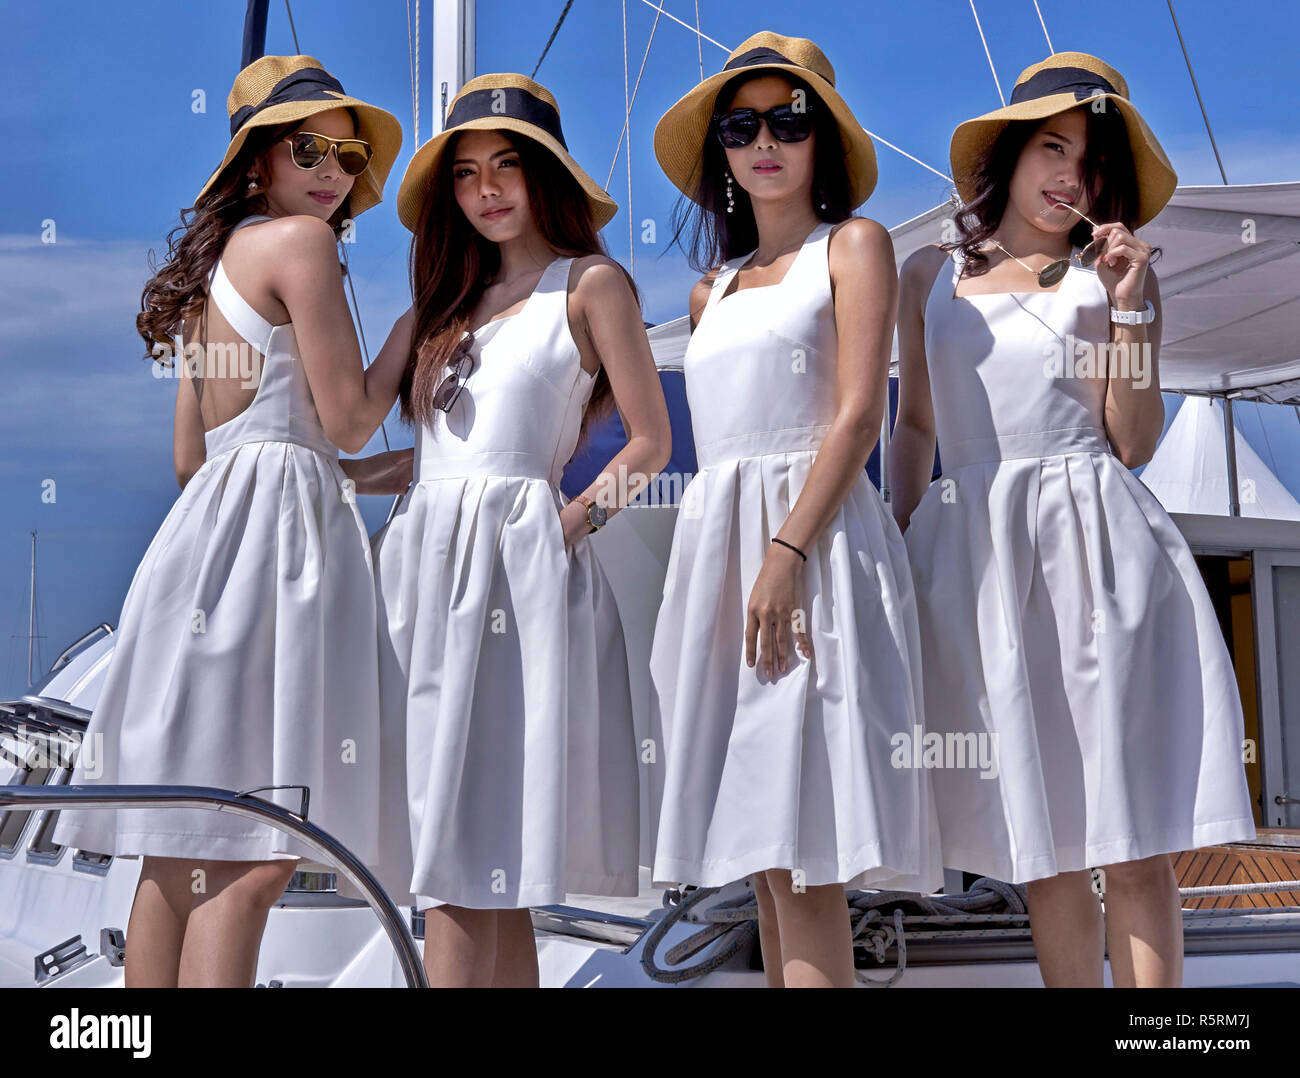 Models posing on a luxury yacht at the Pattaya boat show 2019, Thailand Southeast Asia - Stock Image